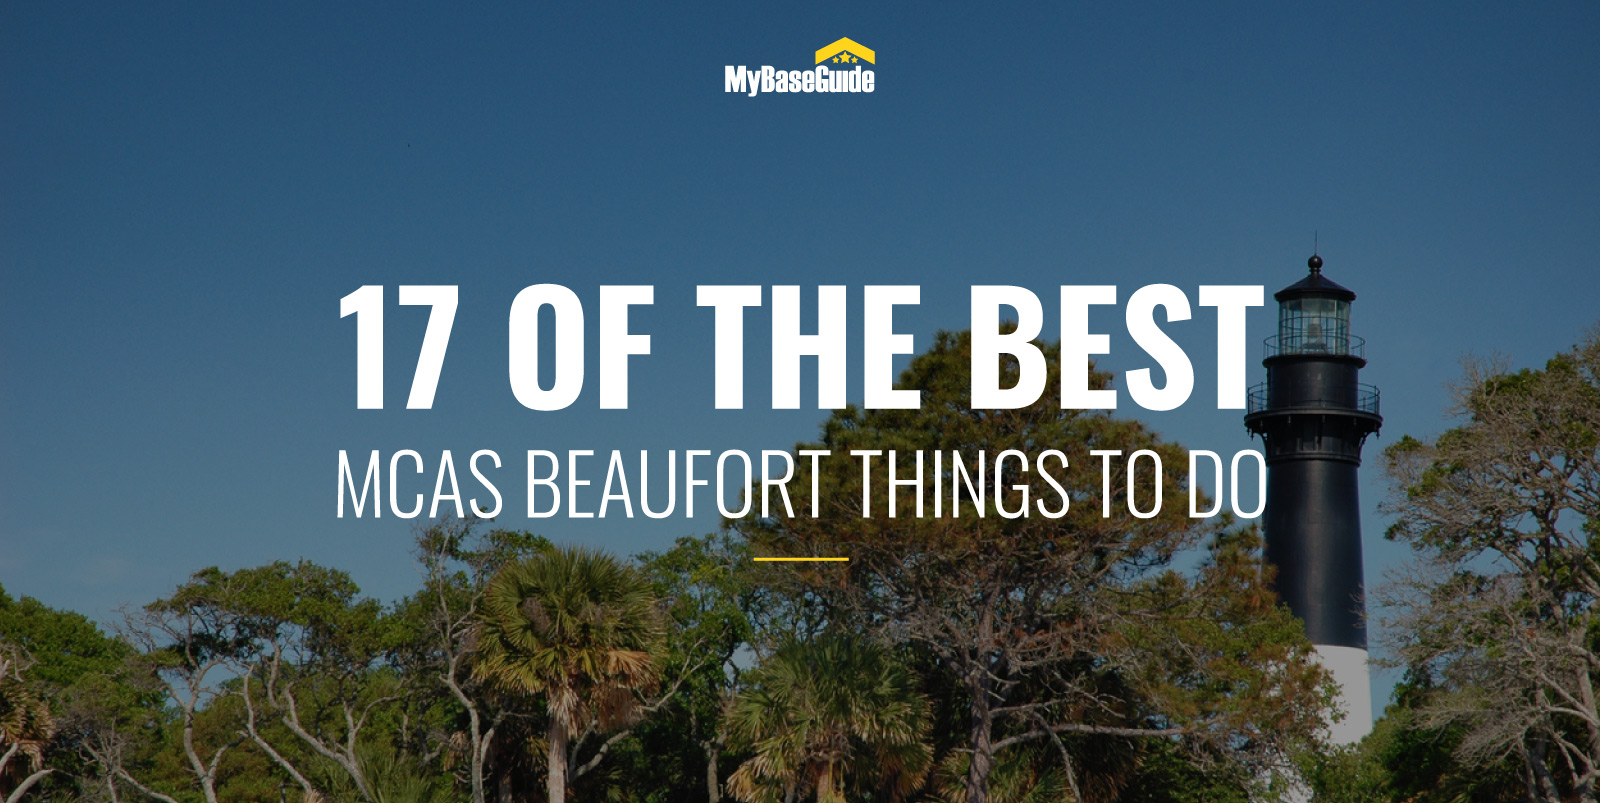 17 of the Best MCAS Beaufort Things To Do